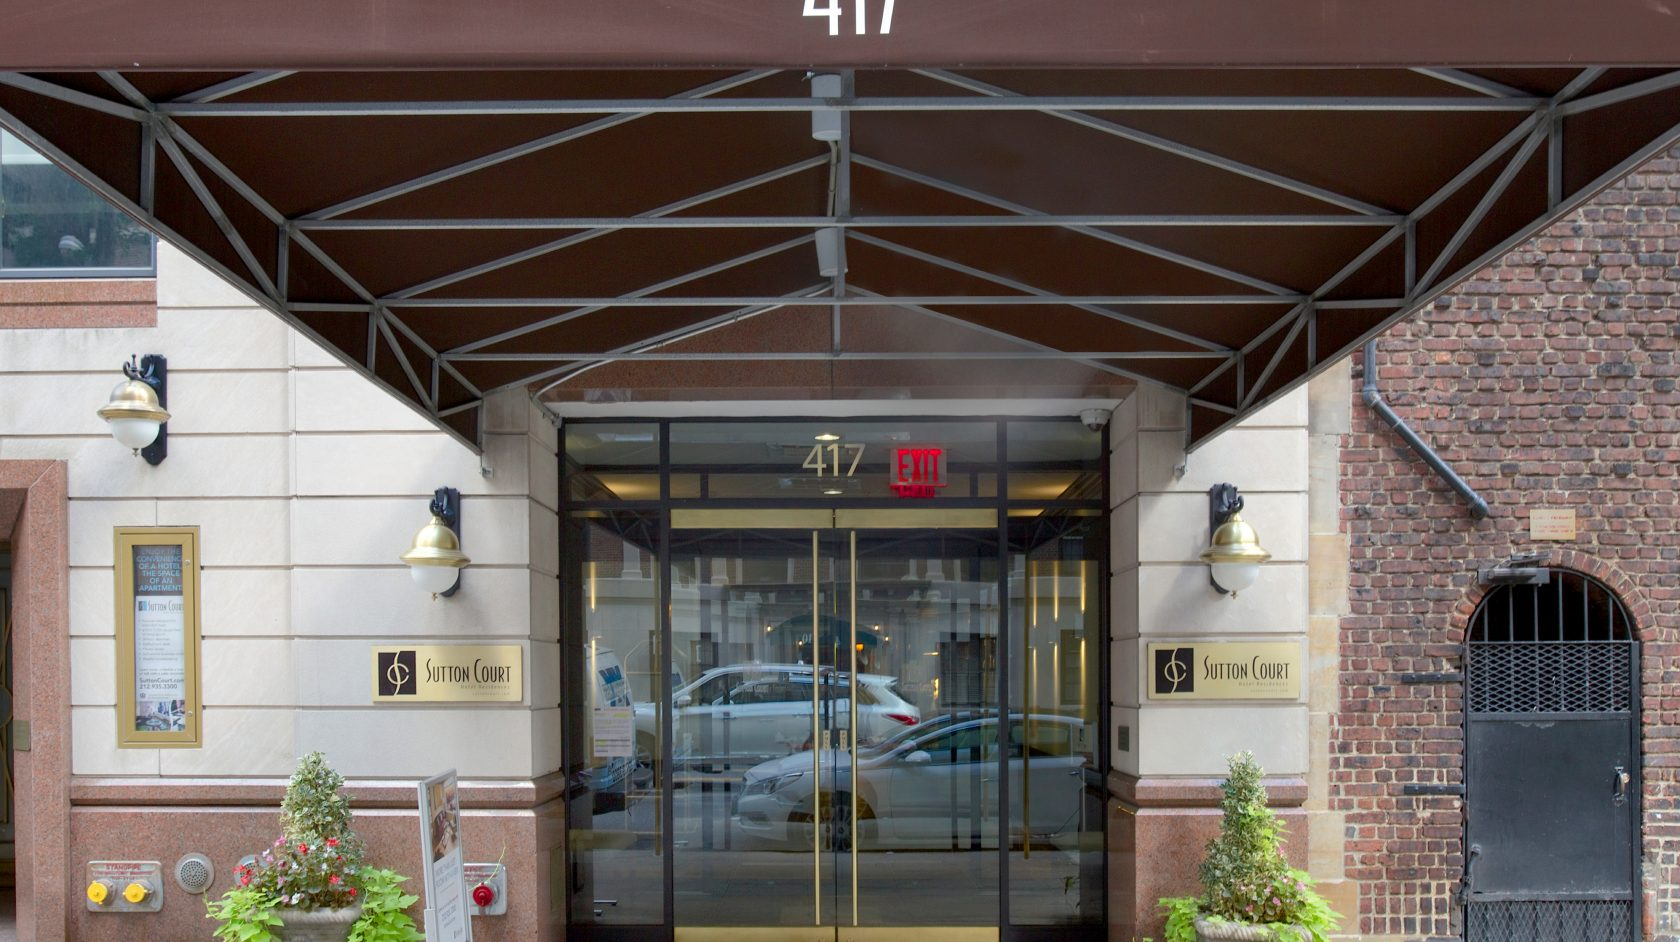 front view of entrance of Sutton Court Hotel in NYC